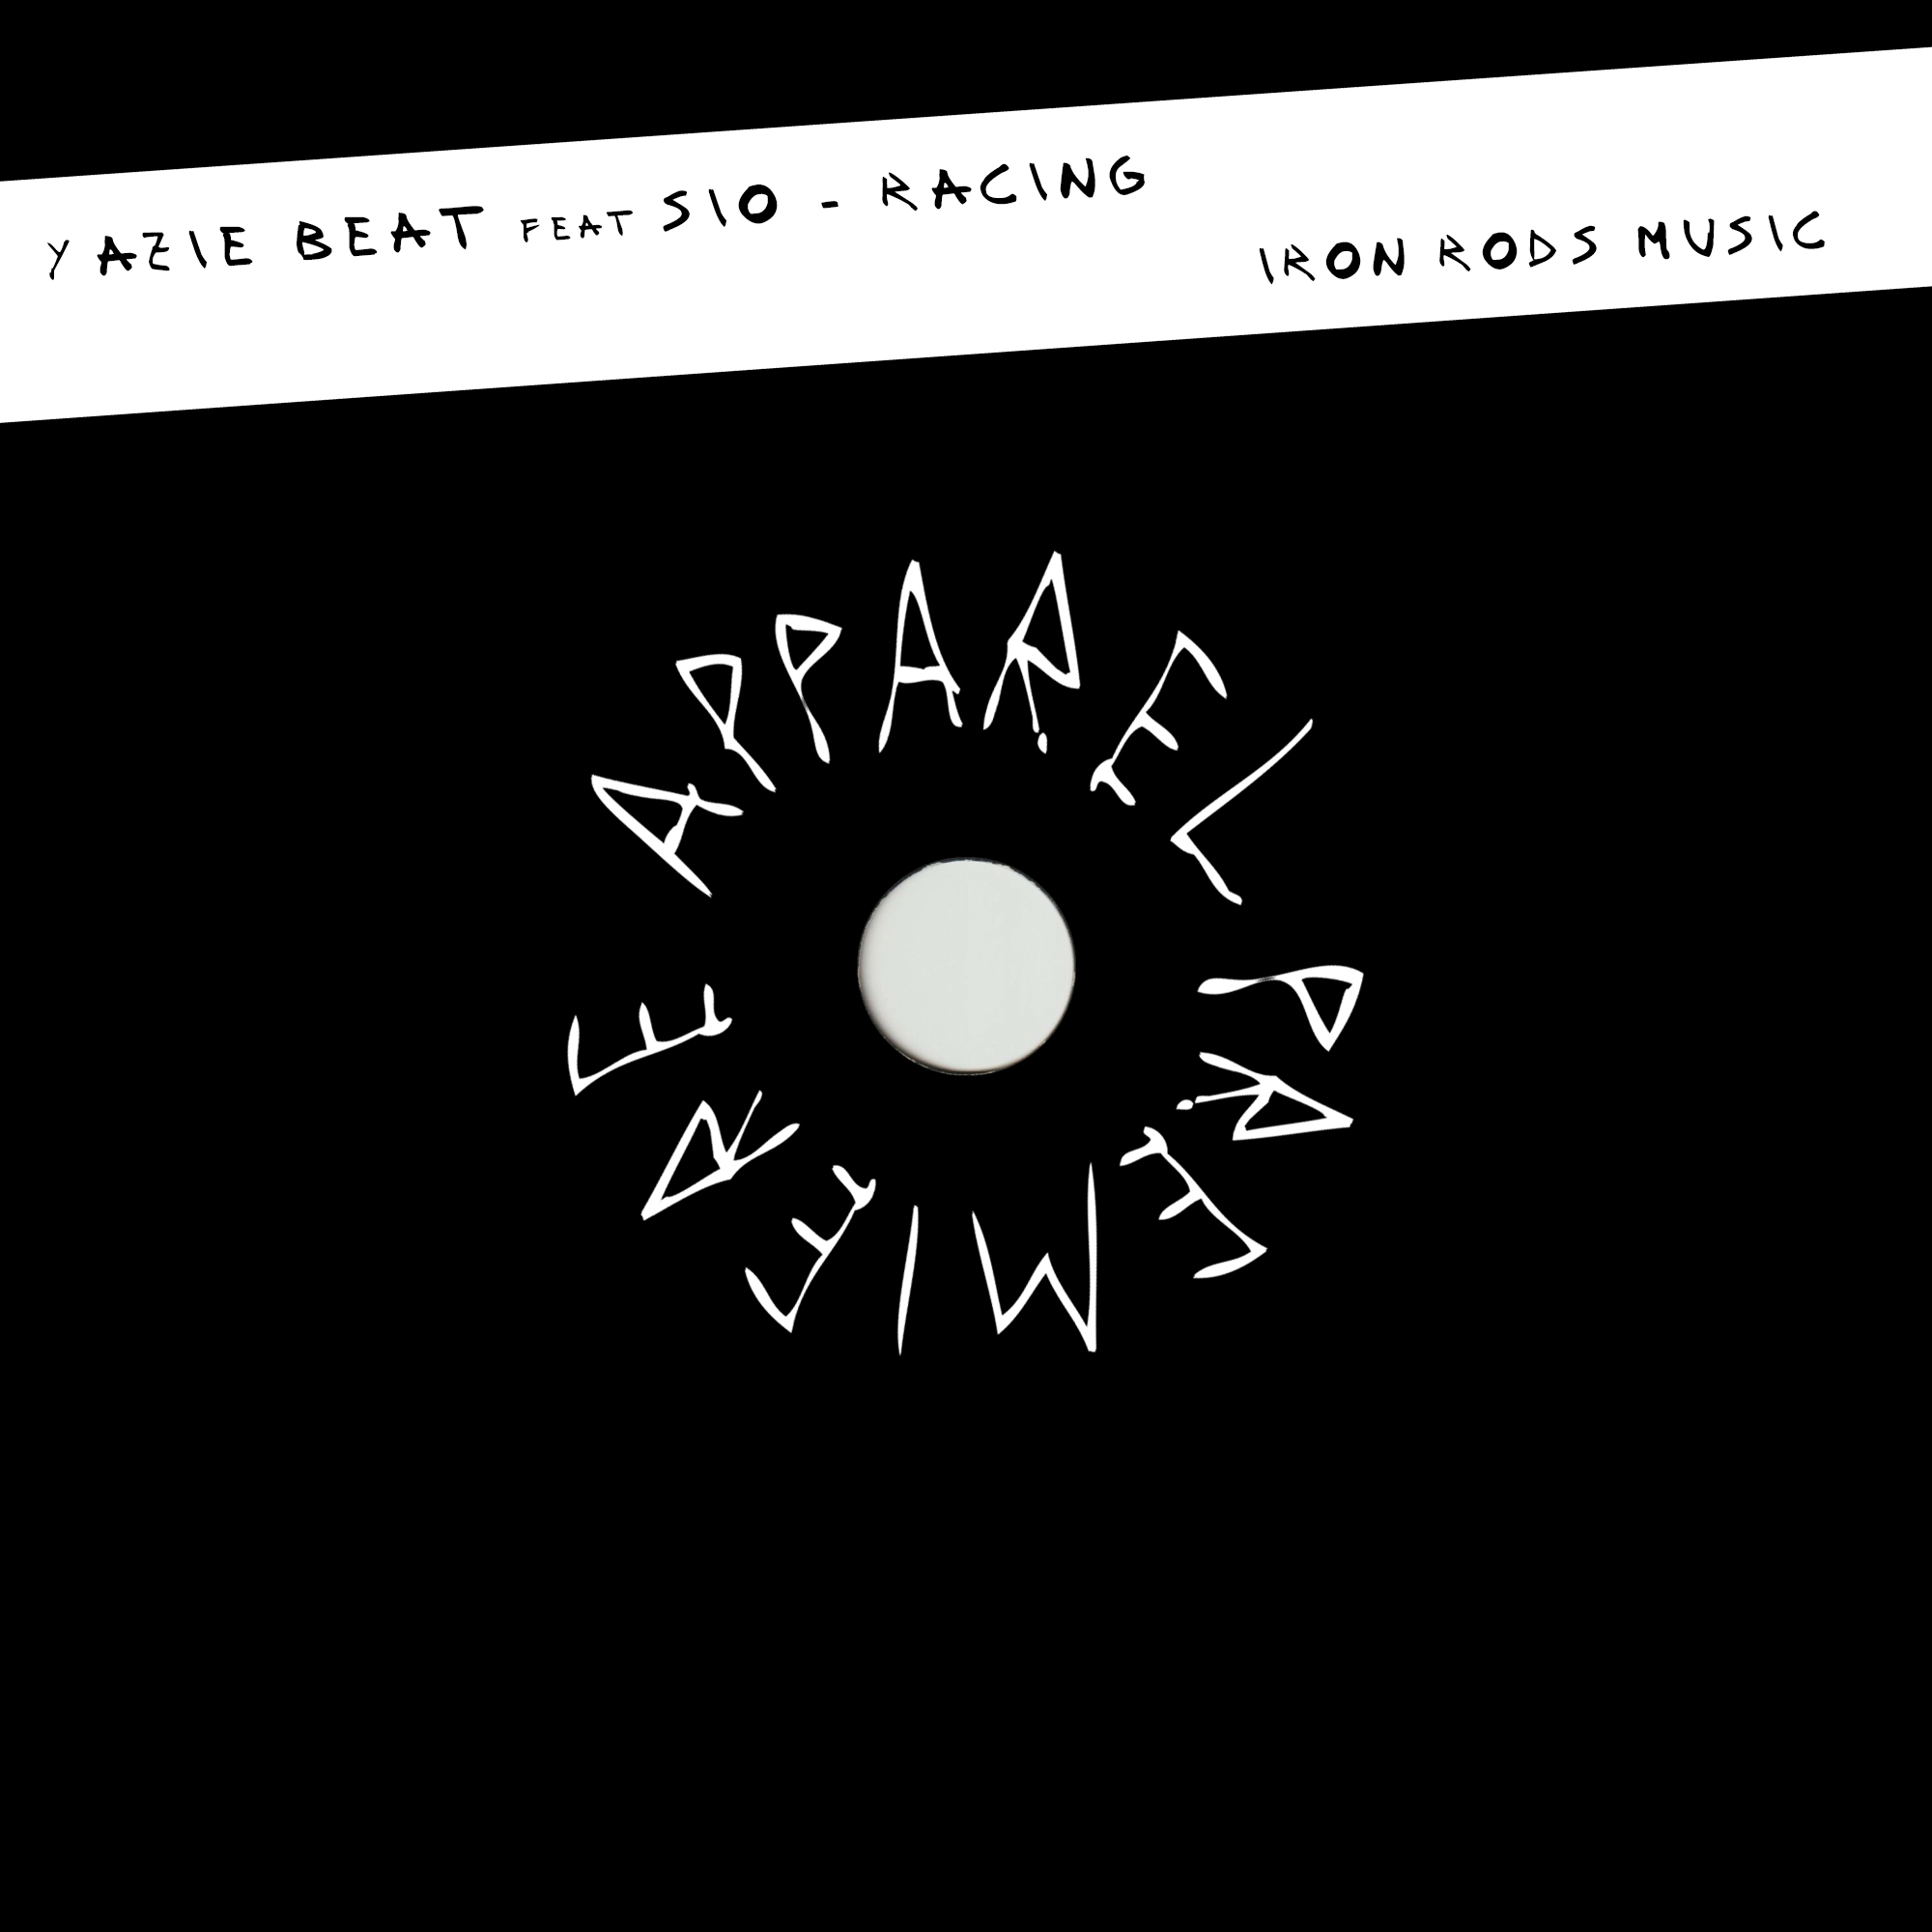 APPAREL PREMIERE Yazie Beat feat Sio – Racing [Iron Rods Music]